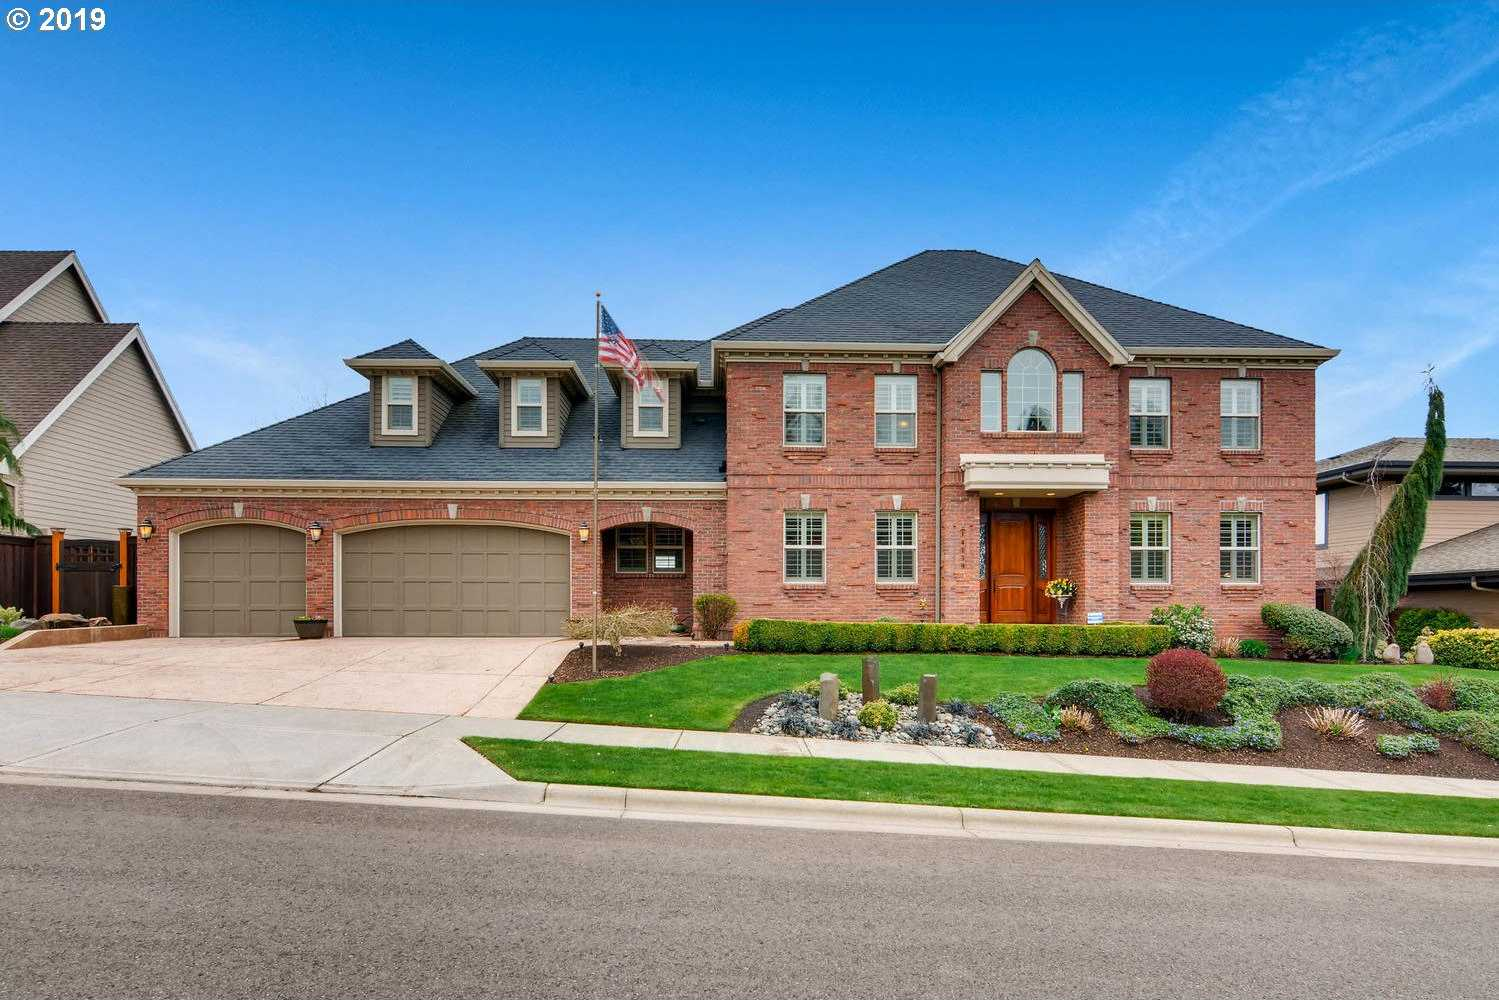 $1,075,000 - 4Br/4Ba -  for Sale in Brentwood Estates, Tigard